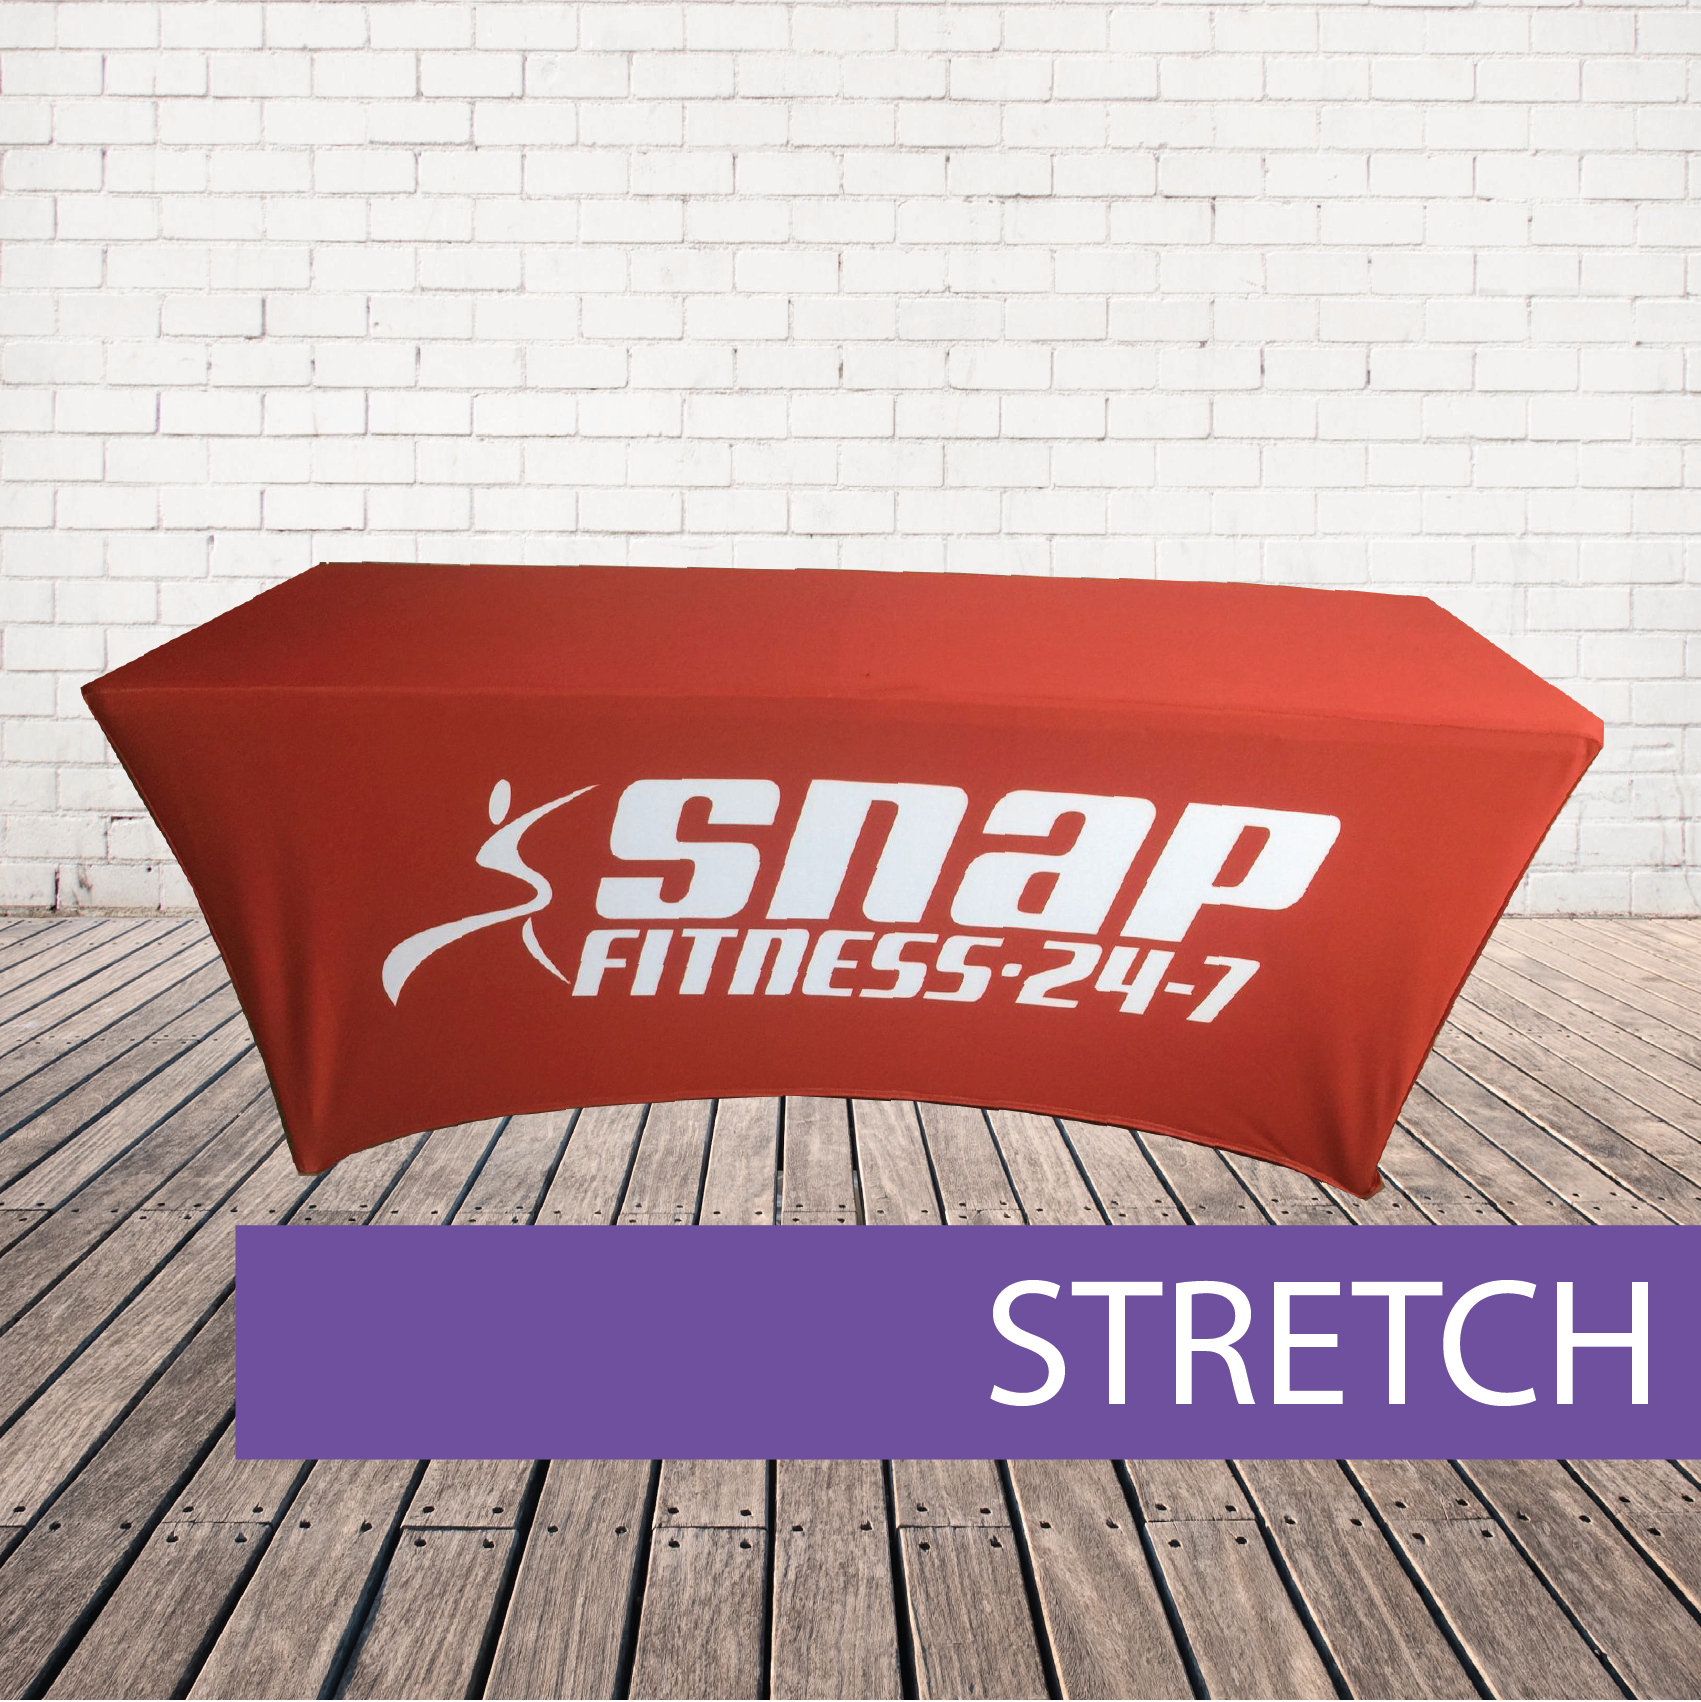 Stretch branded table cover